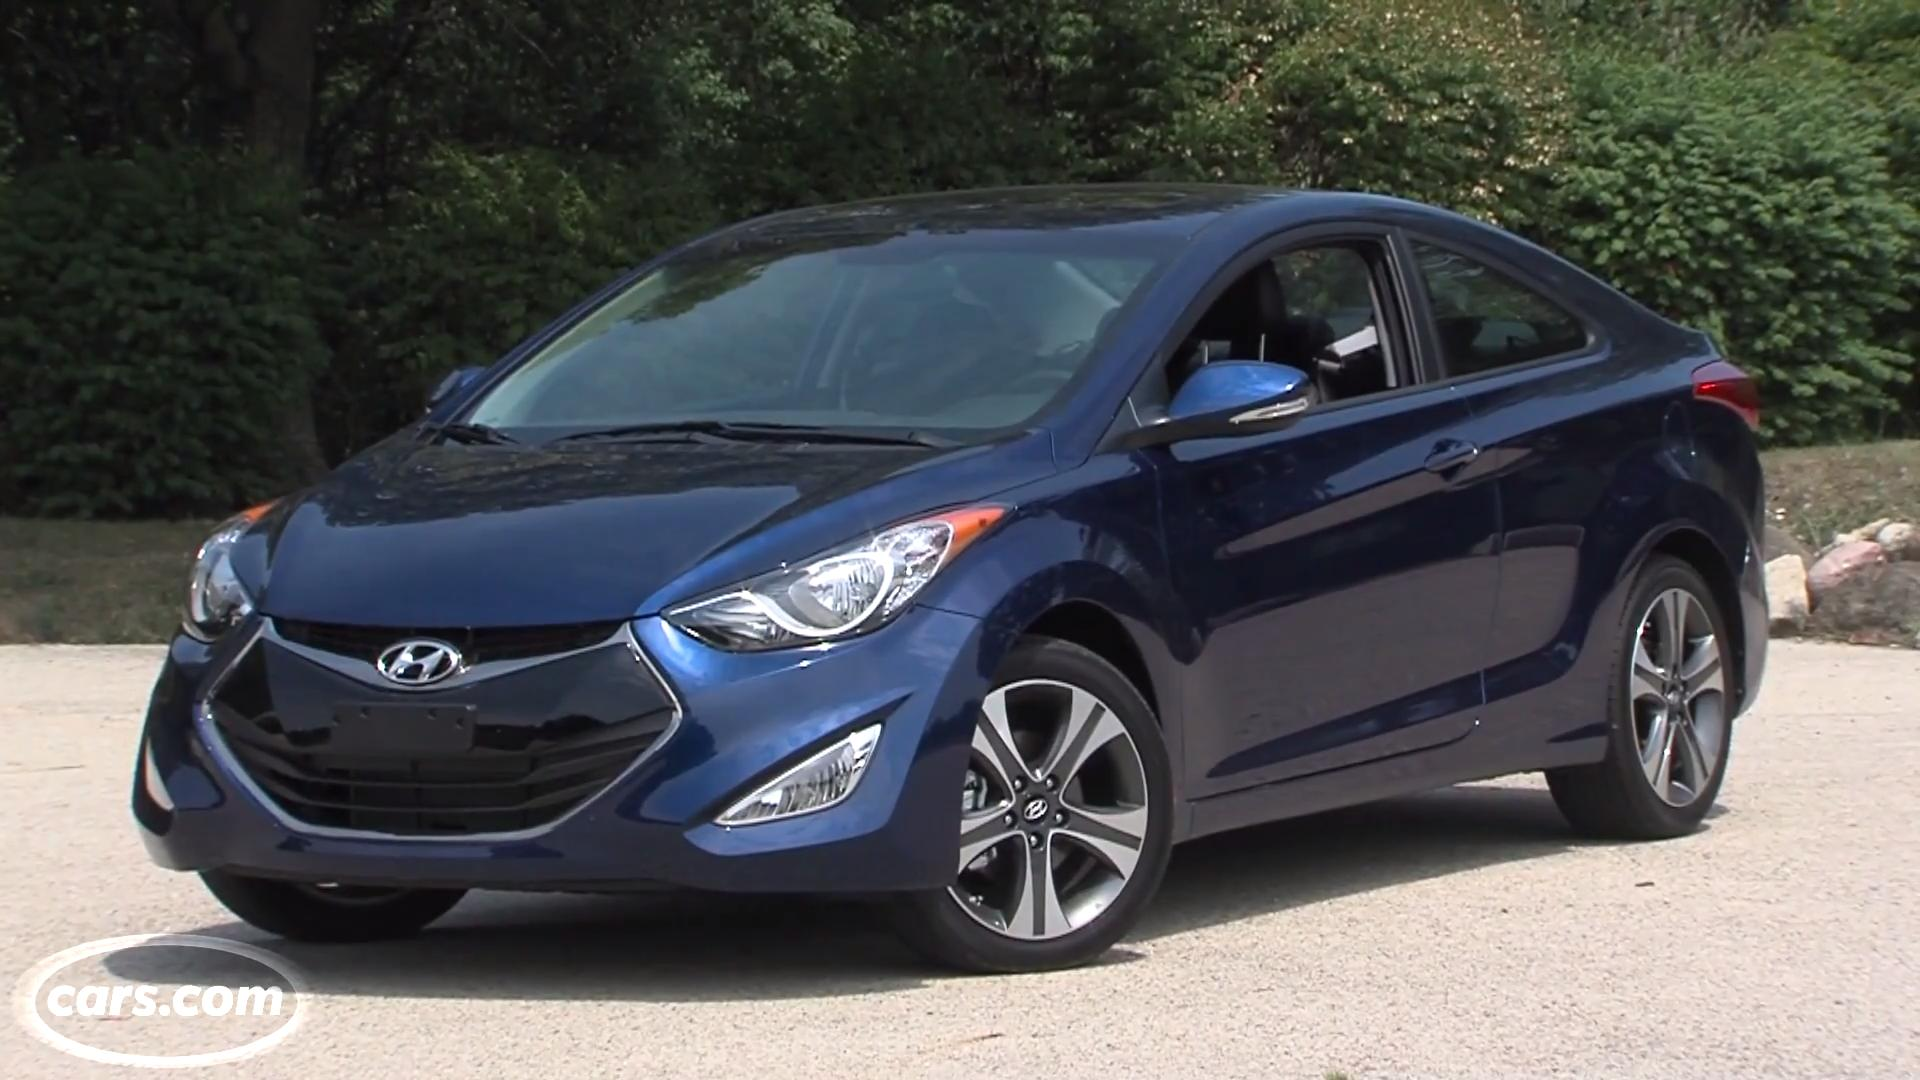 2013 Hyundai Elantra Expert Reviews Specs And Photos 2011 Engine Diagram